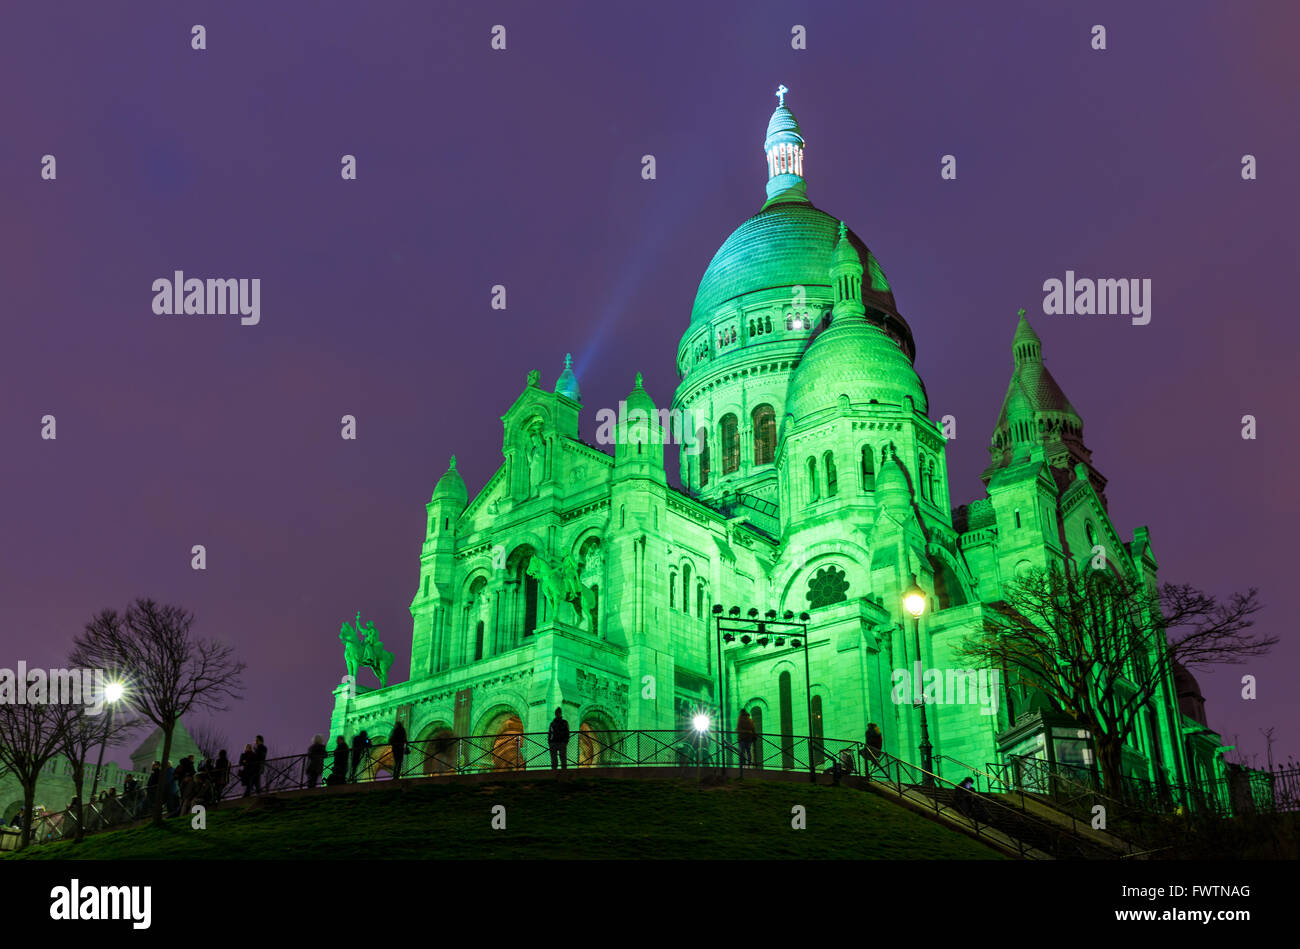 The Basilica of Sacre Coeur in Montmartre, Paris at night - Stock Image